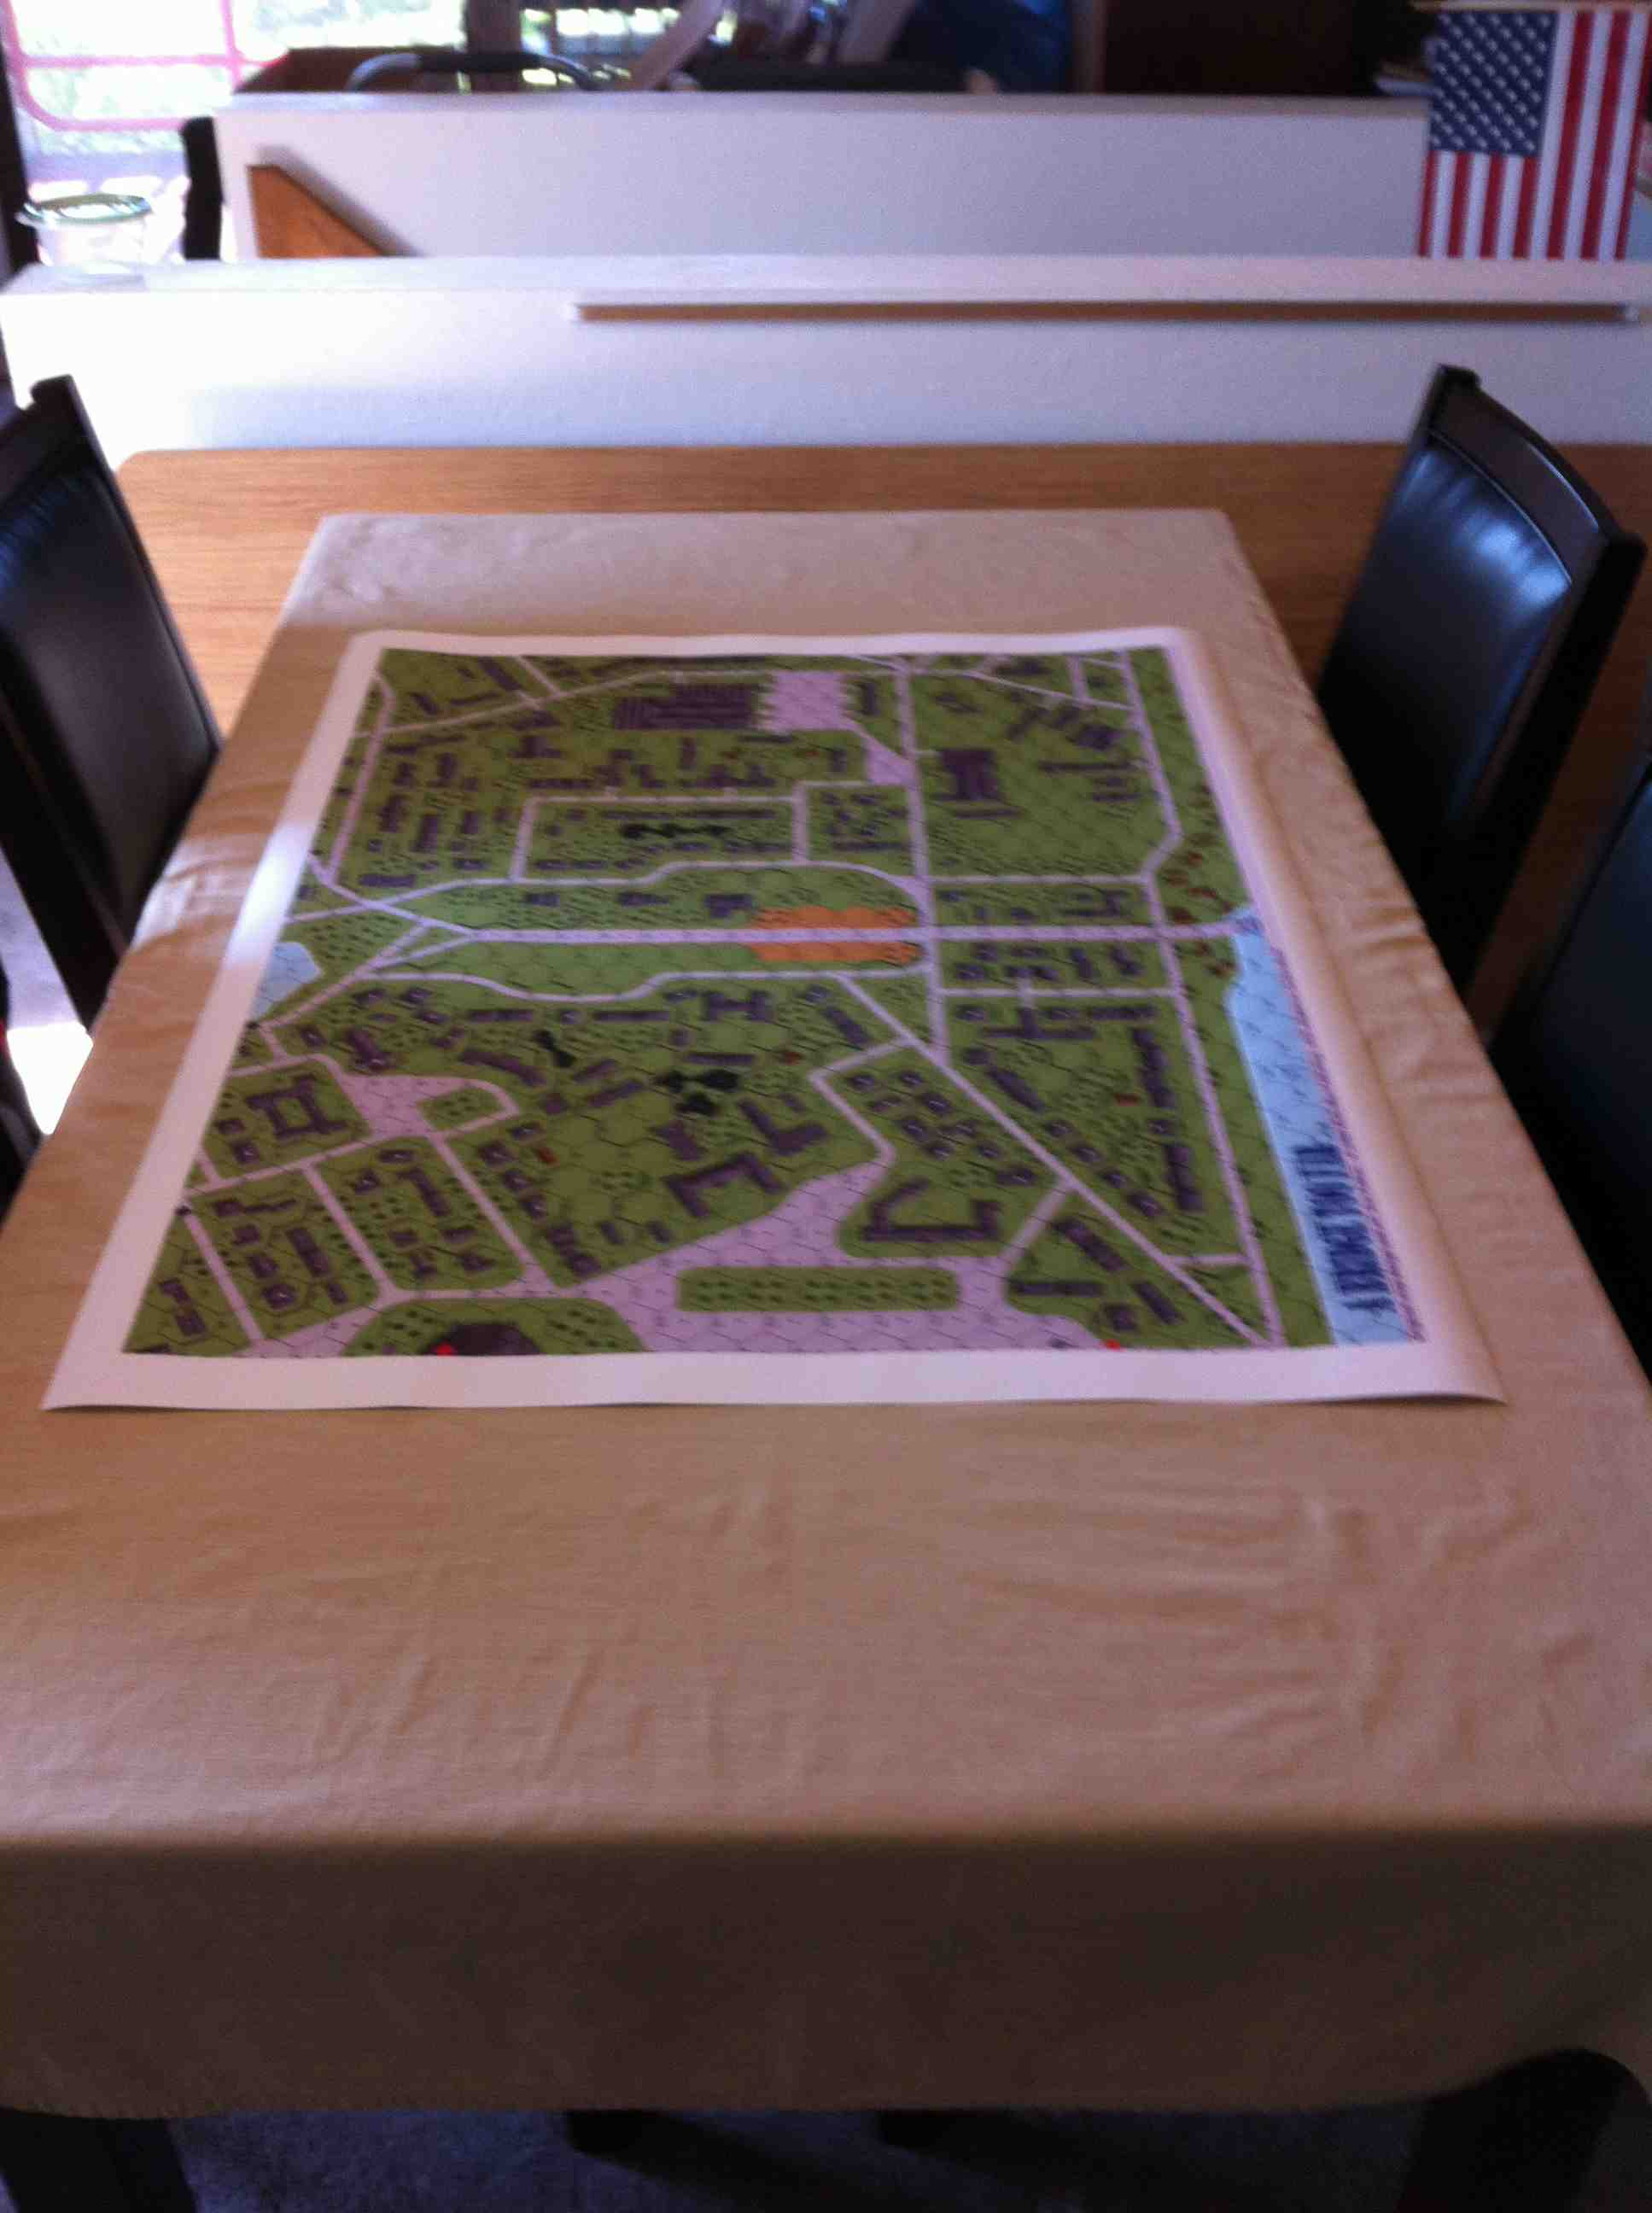 Large Format Map of A Bridge Too Far ASL Scenario